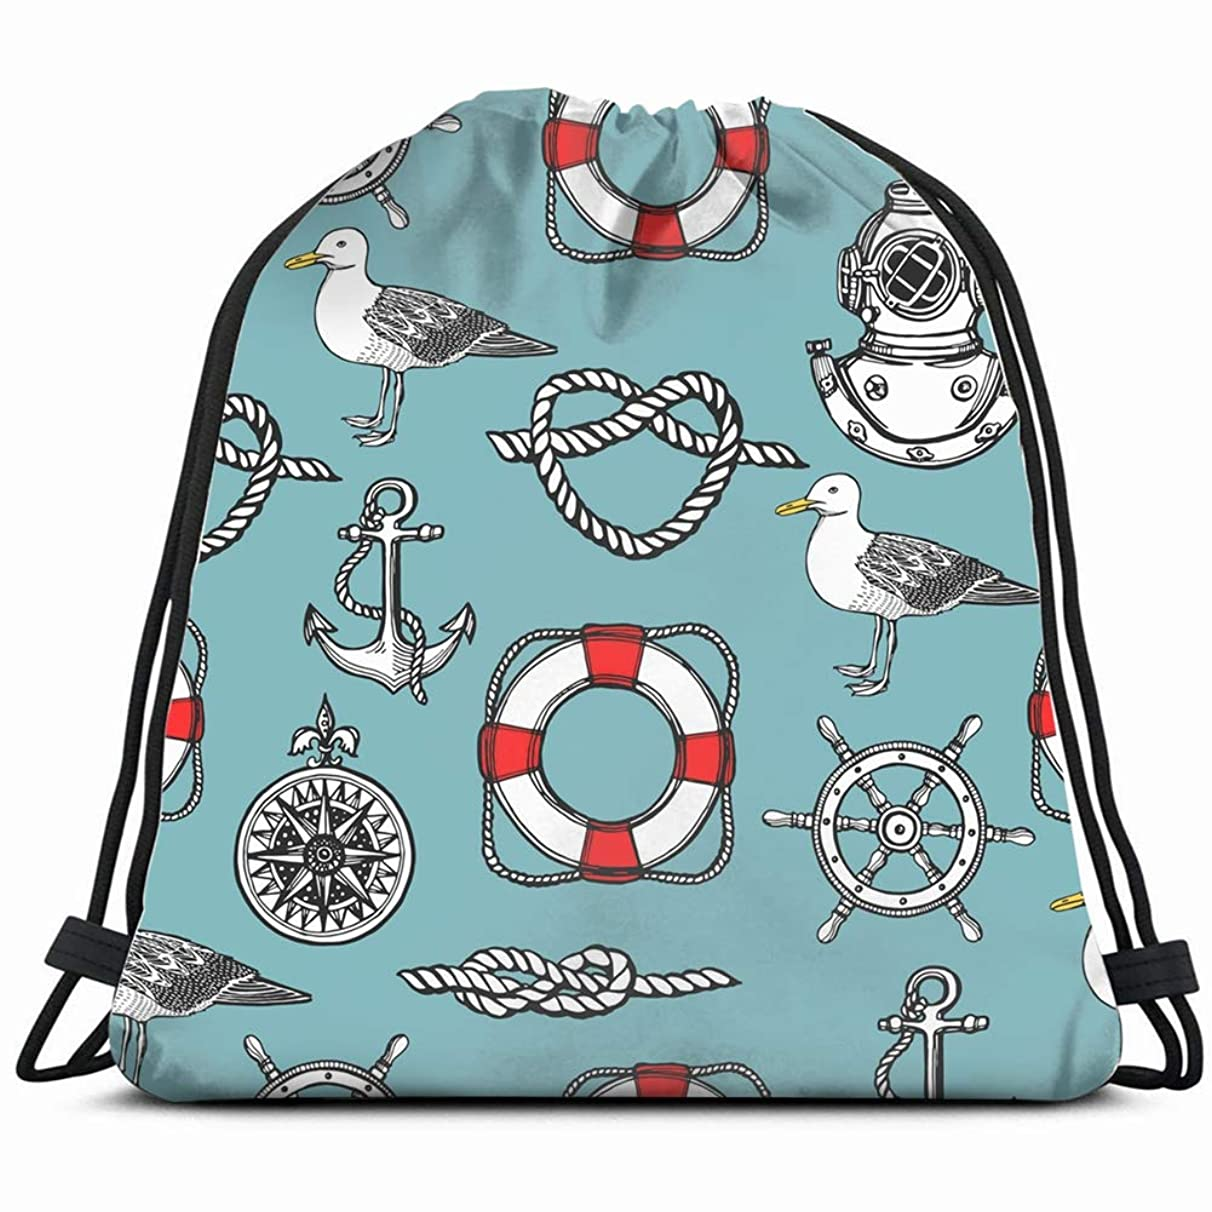 hand drawn vintage nautical Drawstring Backpack Gym Sack Lightweight Bag Water Resistant Gym Backpack for Women&Men for Sports,Travelling,Hiking,Camping,Shopping Yoga